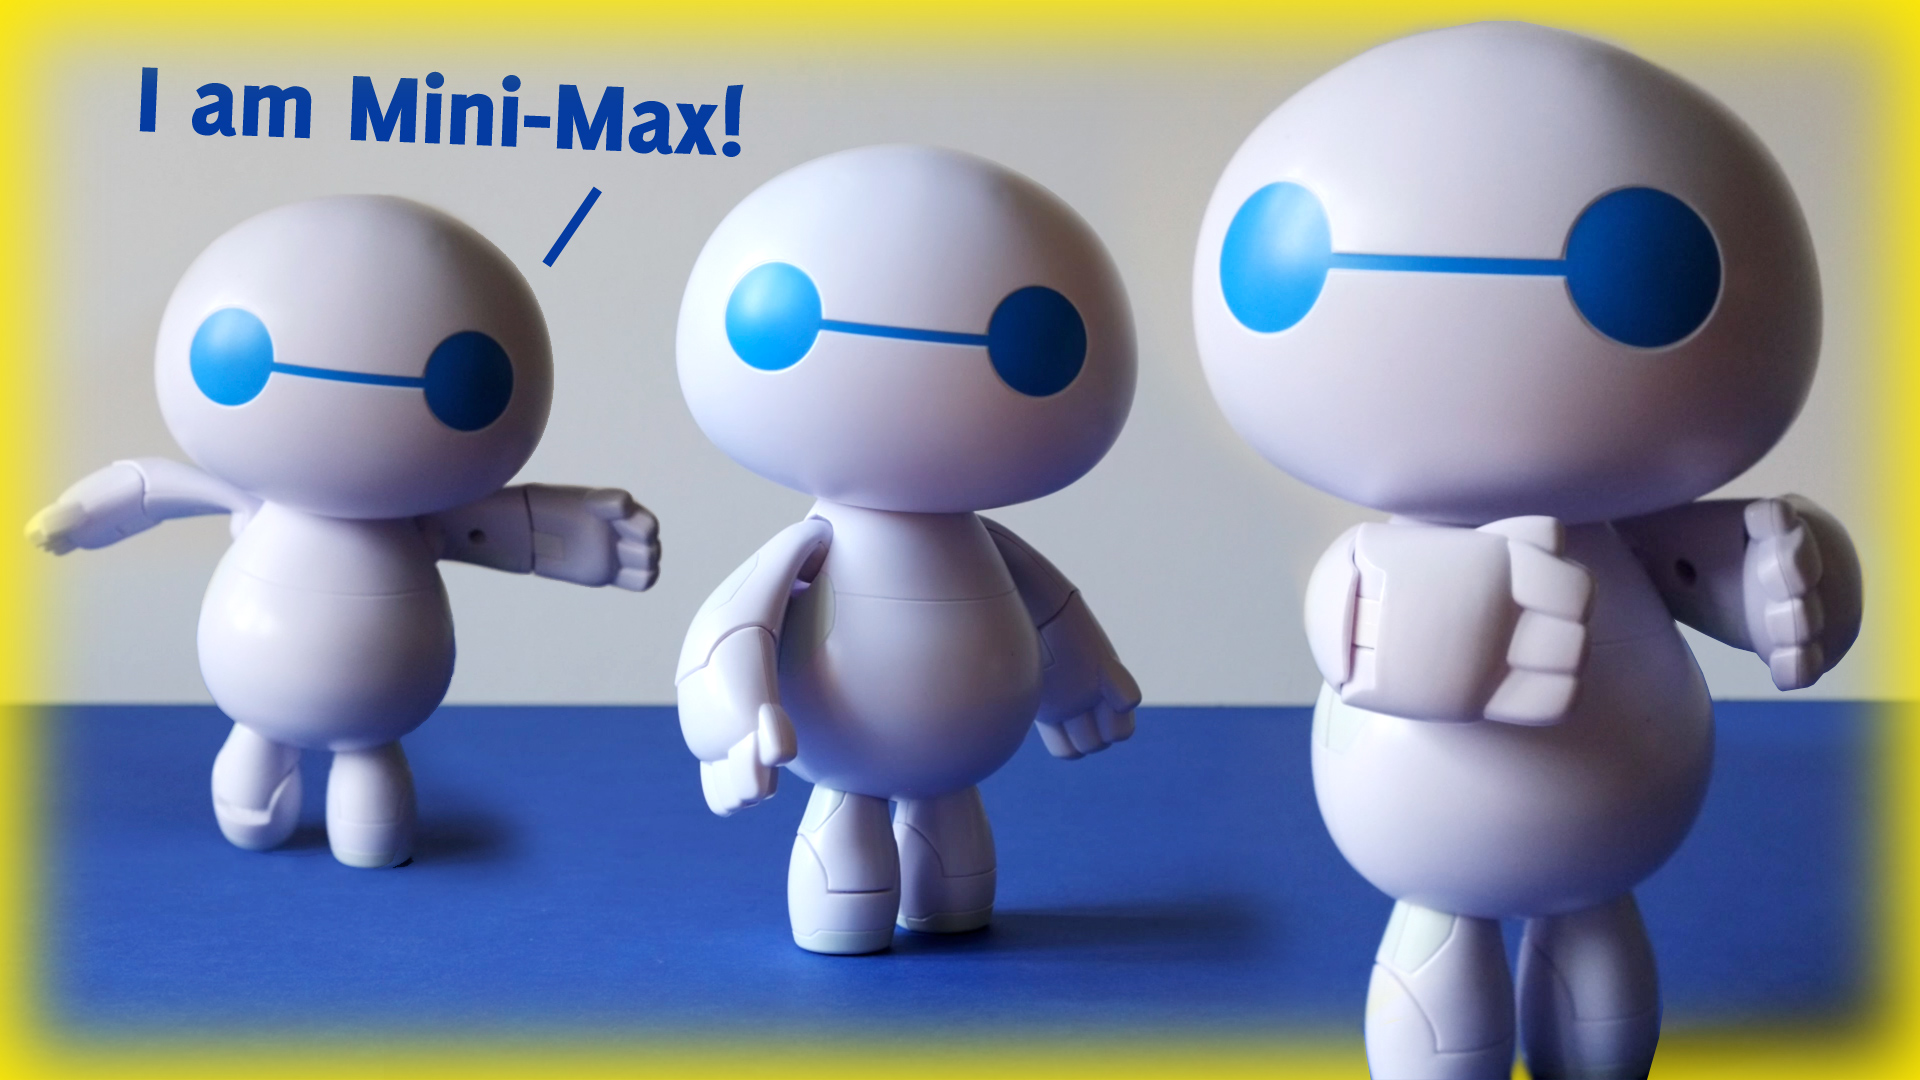 MINI MAX The Small Baymax Robot from Big Hero 6 The Series